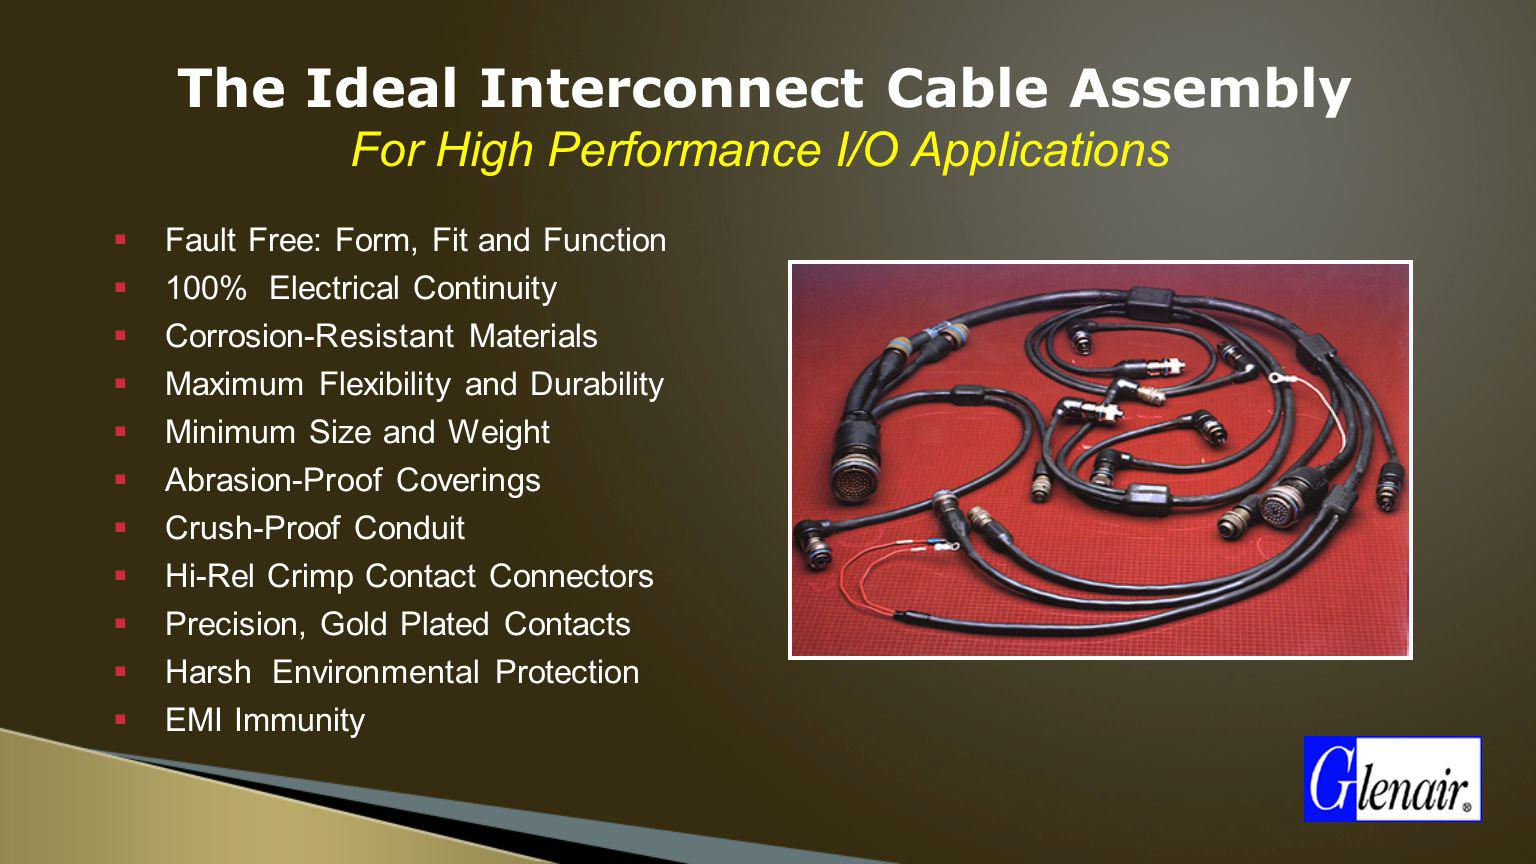 The Ideal Interconnect Cable Assembly